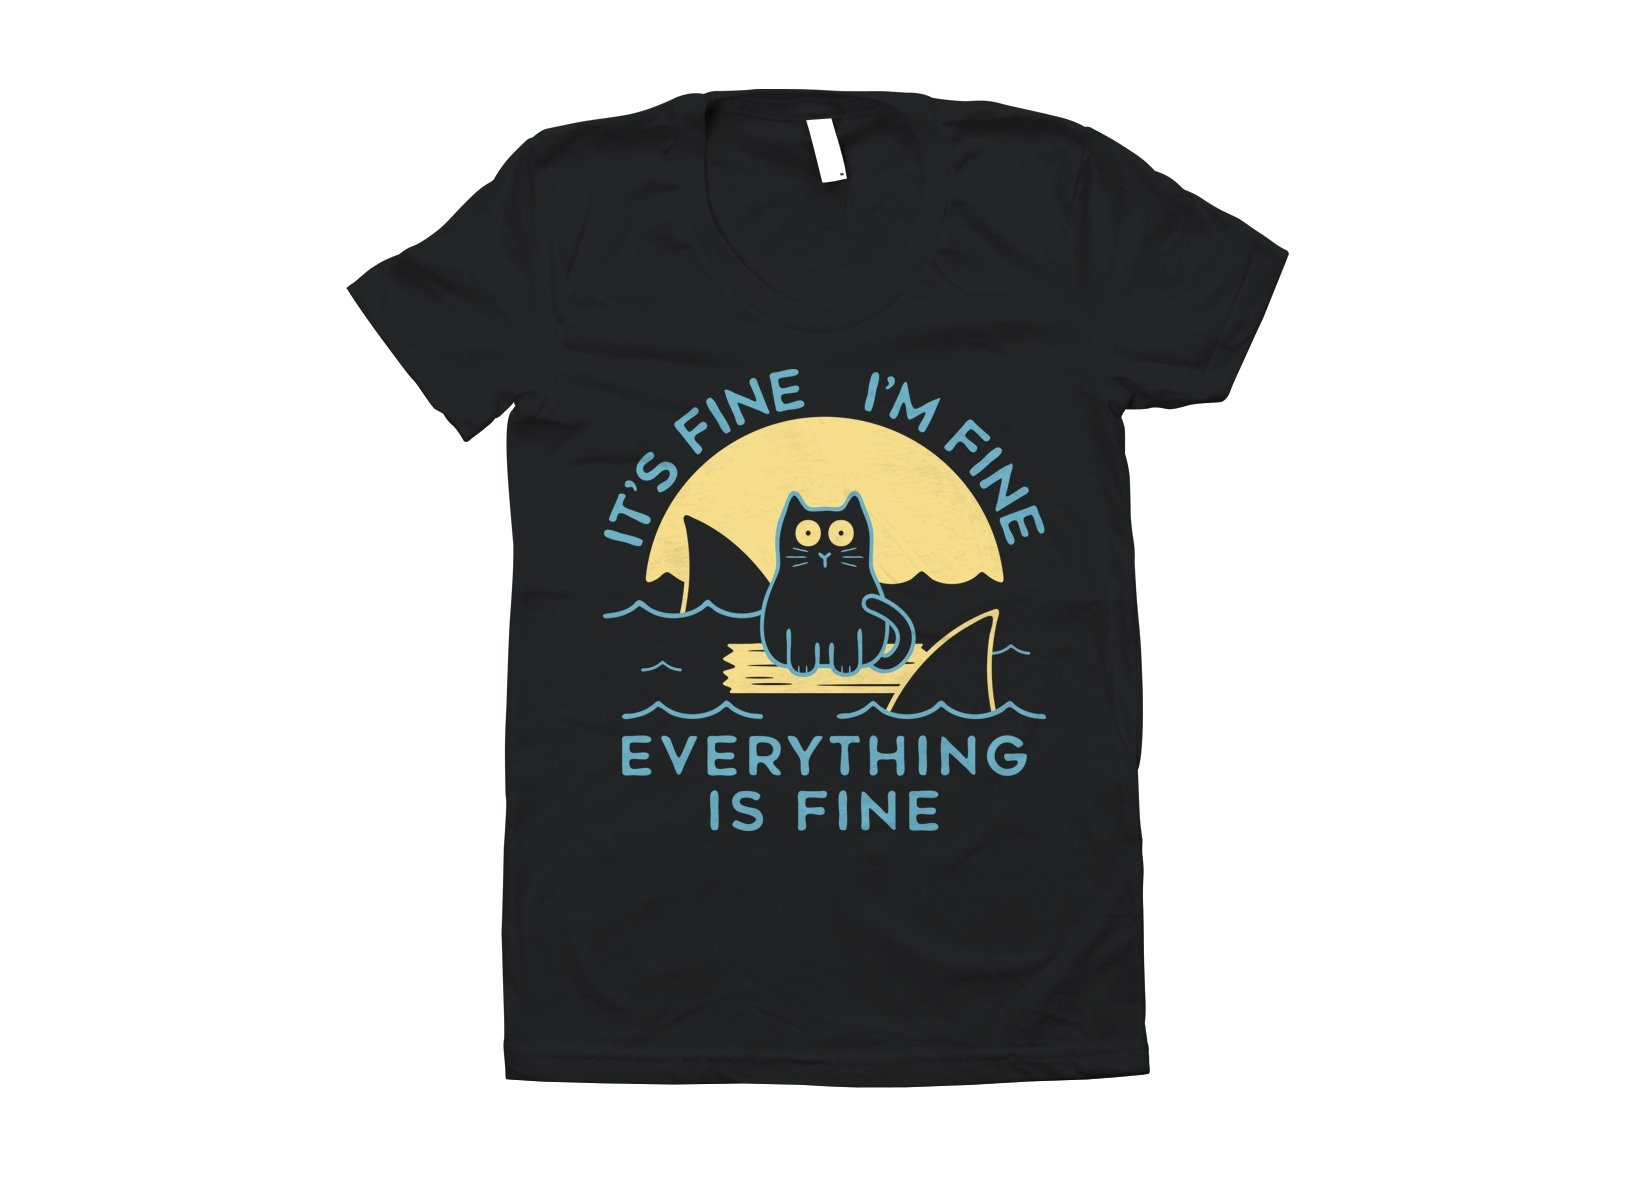 It's Fine I'm Fine Everything Is Fine on Juniors T-Shirt